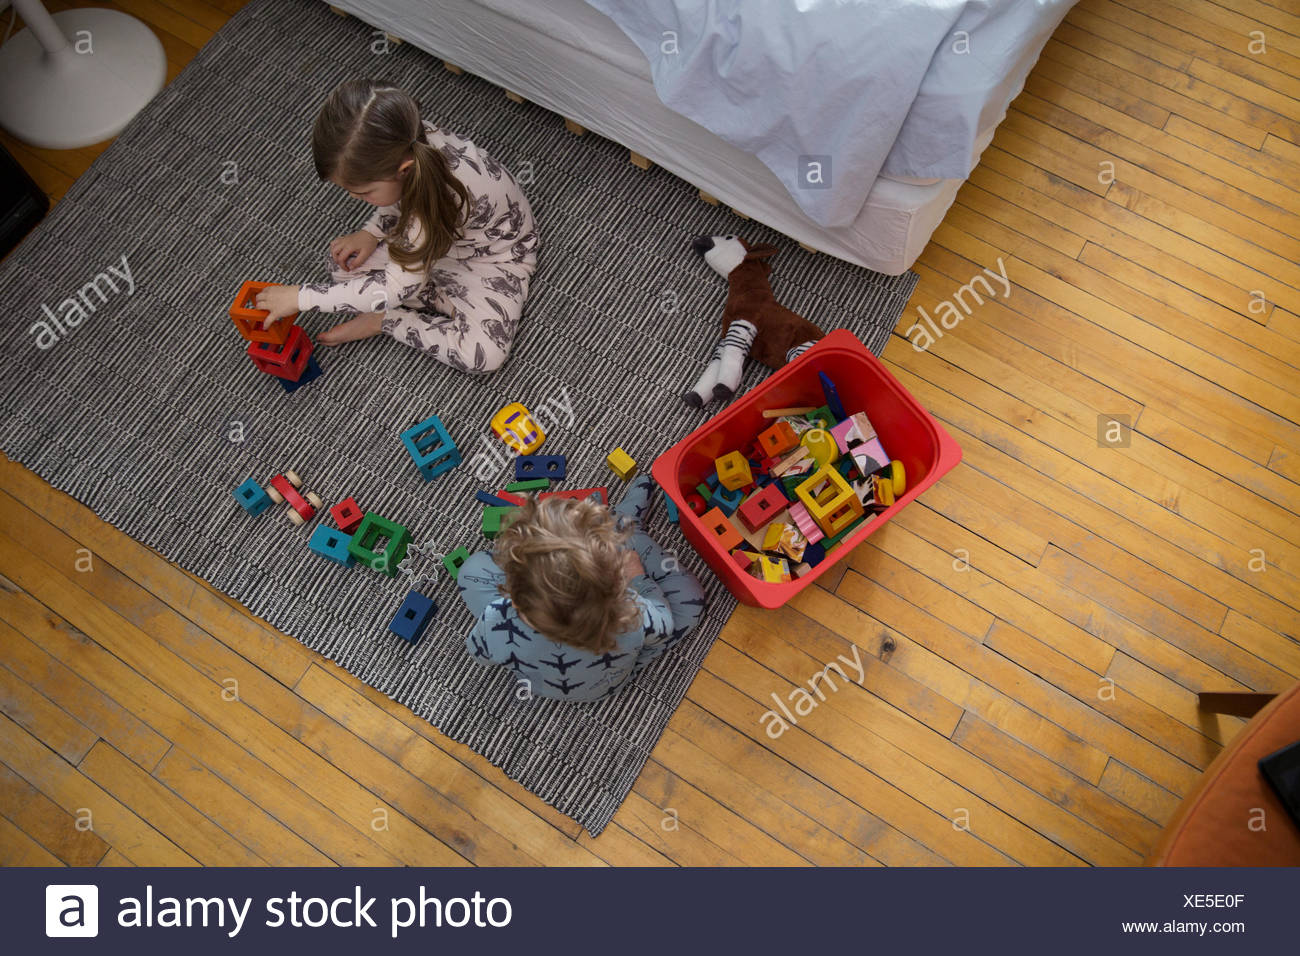 Children in pajamas playing with toys on floor - Stock Image